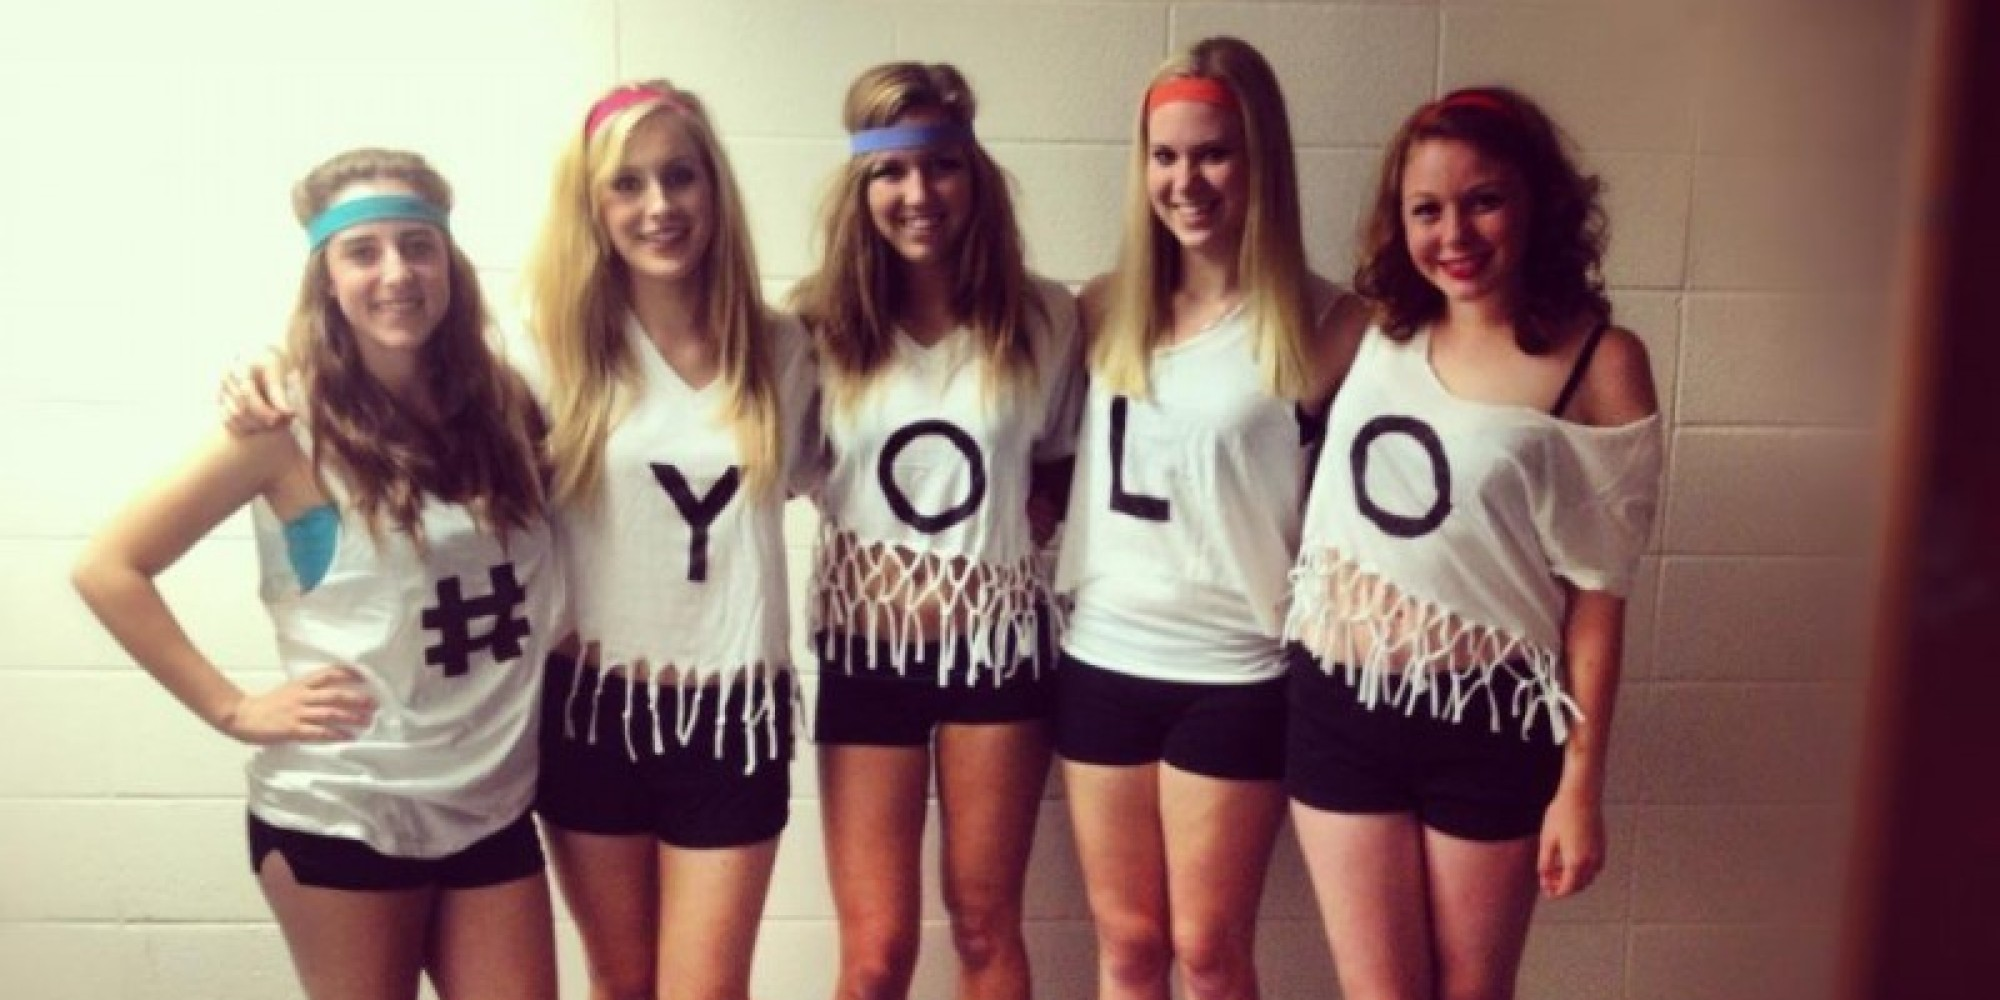 Group costume ideas that are cheap easy and totally diy for group costume ideas that are cheap easy and totally diy for halloween photos huffpost solutioingenieria